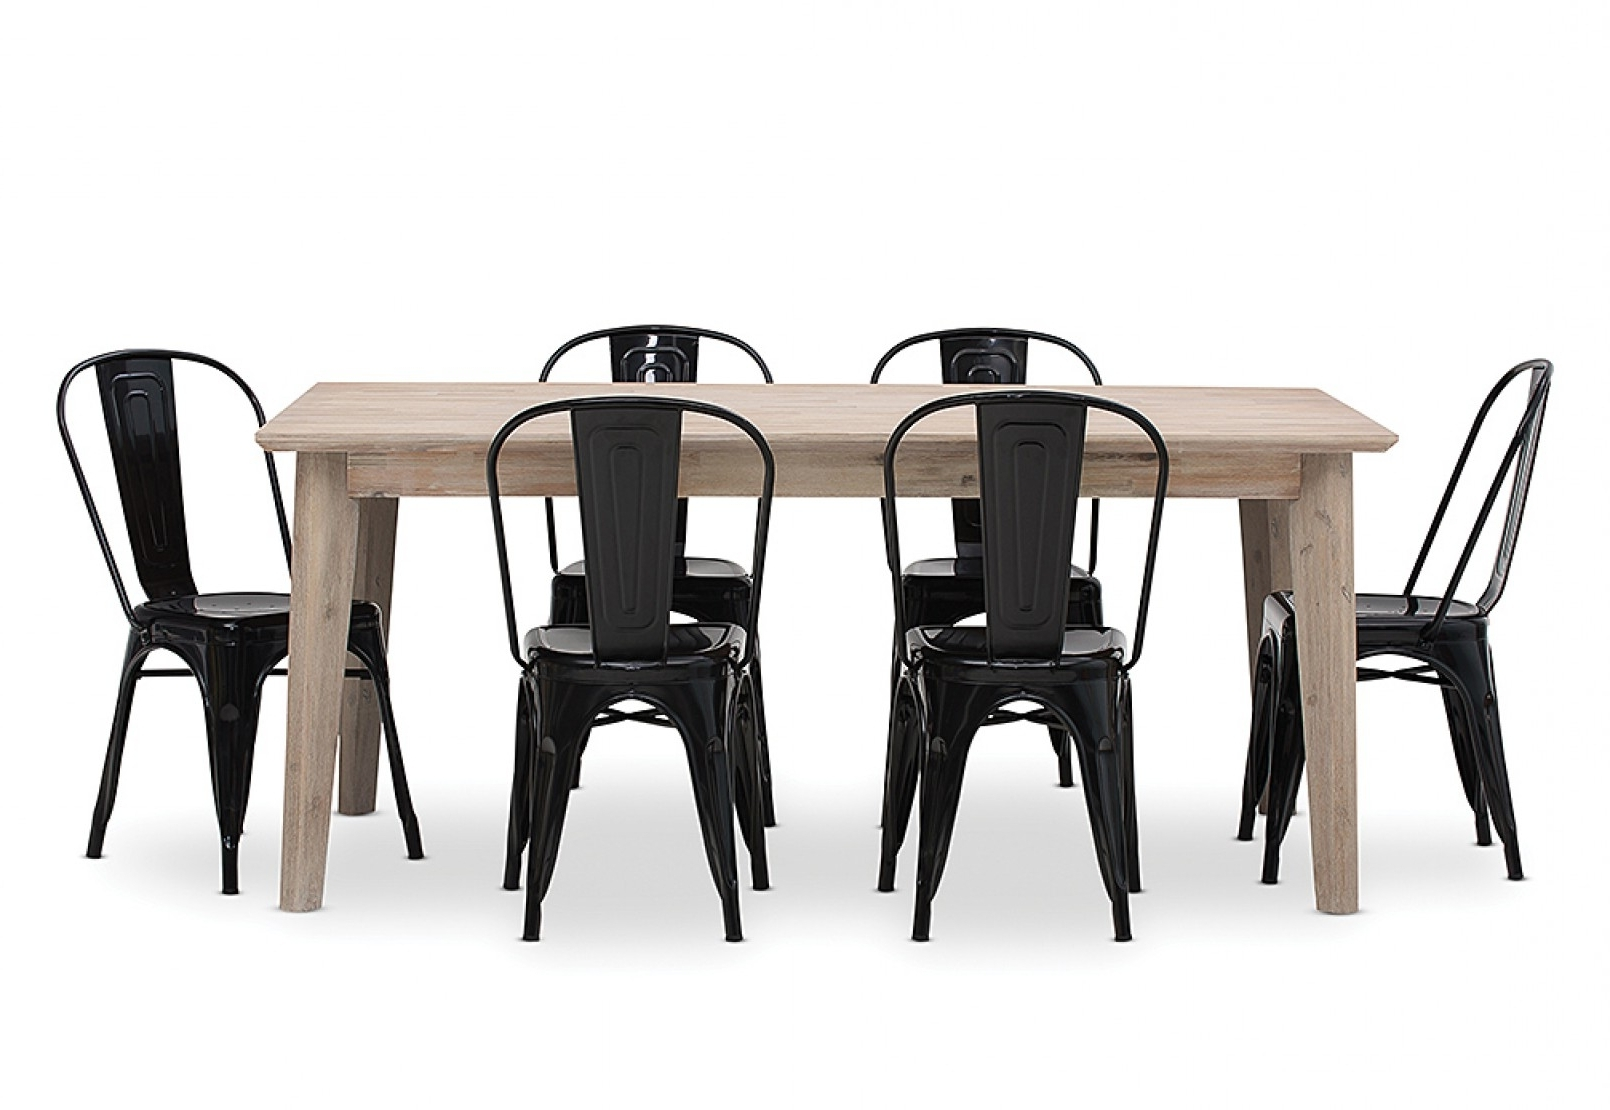 Portland Dining Tables Intended For Favorite Portland 7 Piece Dining Suite With Rocket Dining Chairs (View 12 of 25)